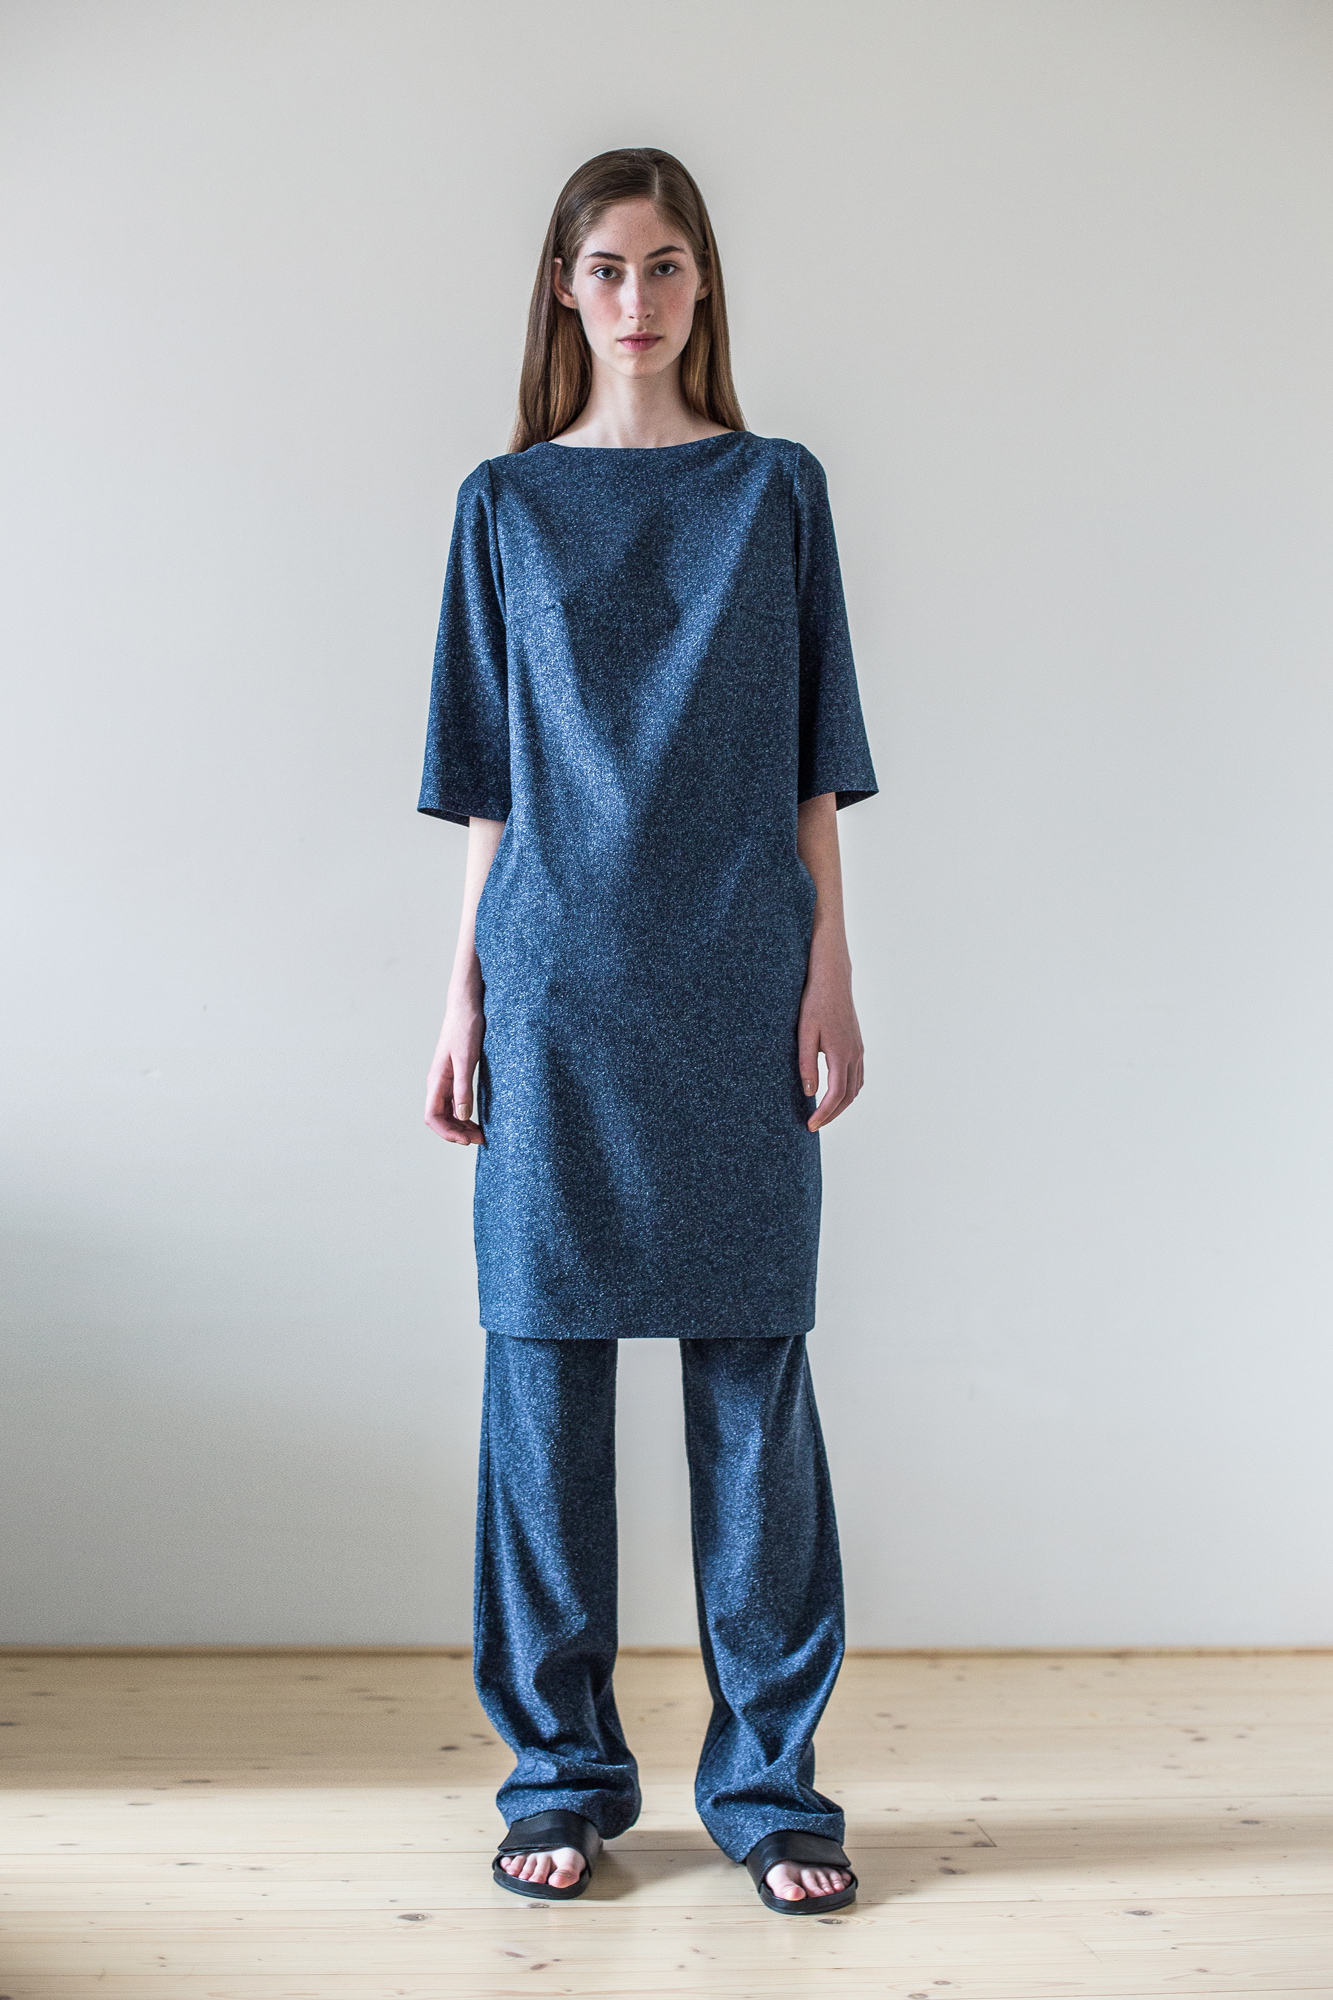 wearenotsisters_wrns_coherence-dress_01